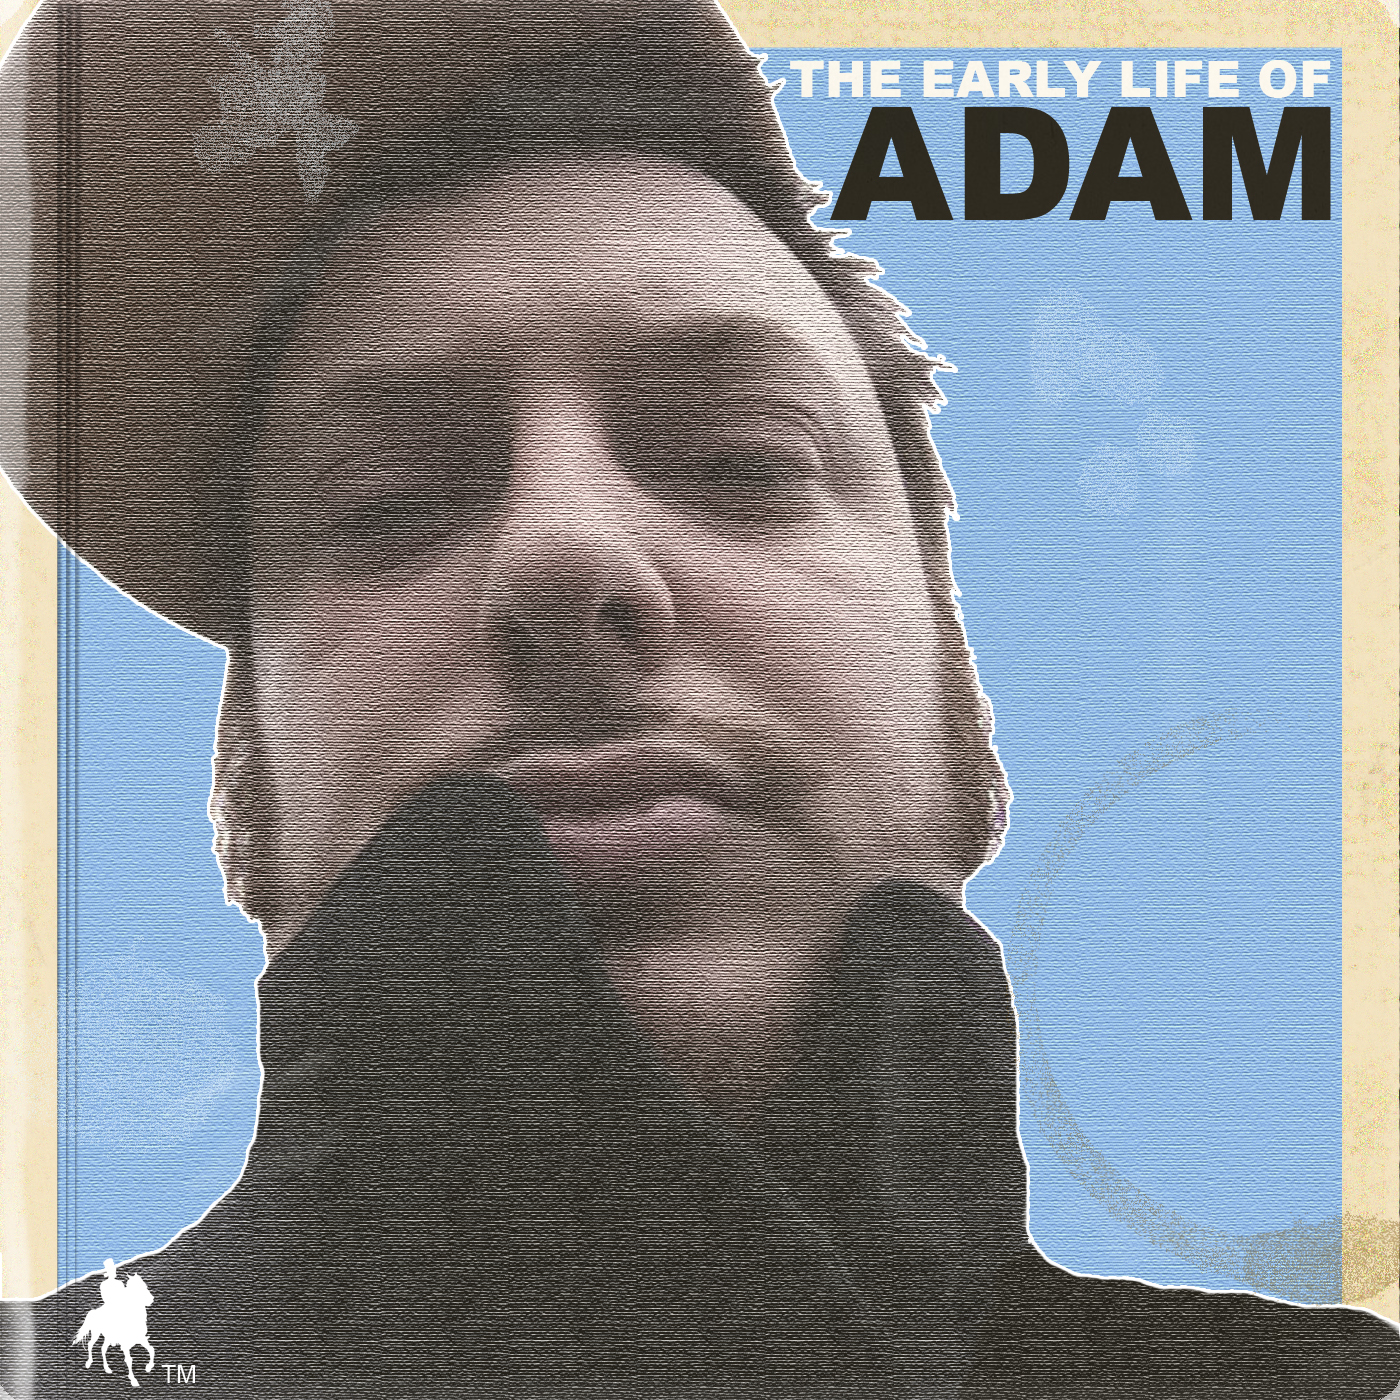 ADAM (formerly Adam Warlock) - The Early Life of ADAM (prod by Nasa, Willie Green, Subtitle & more)